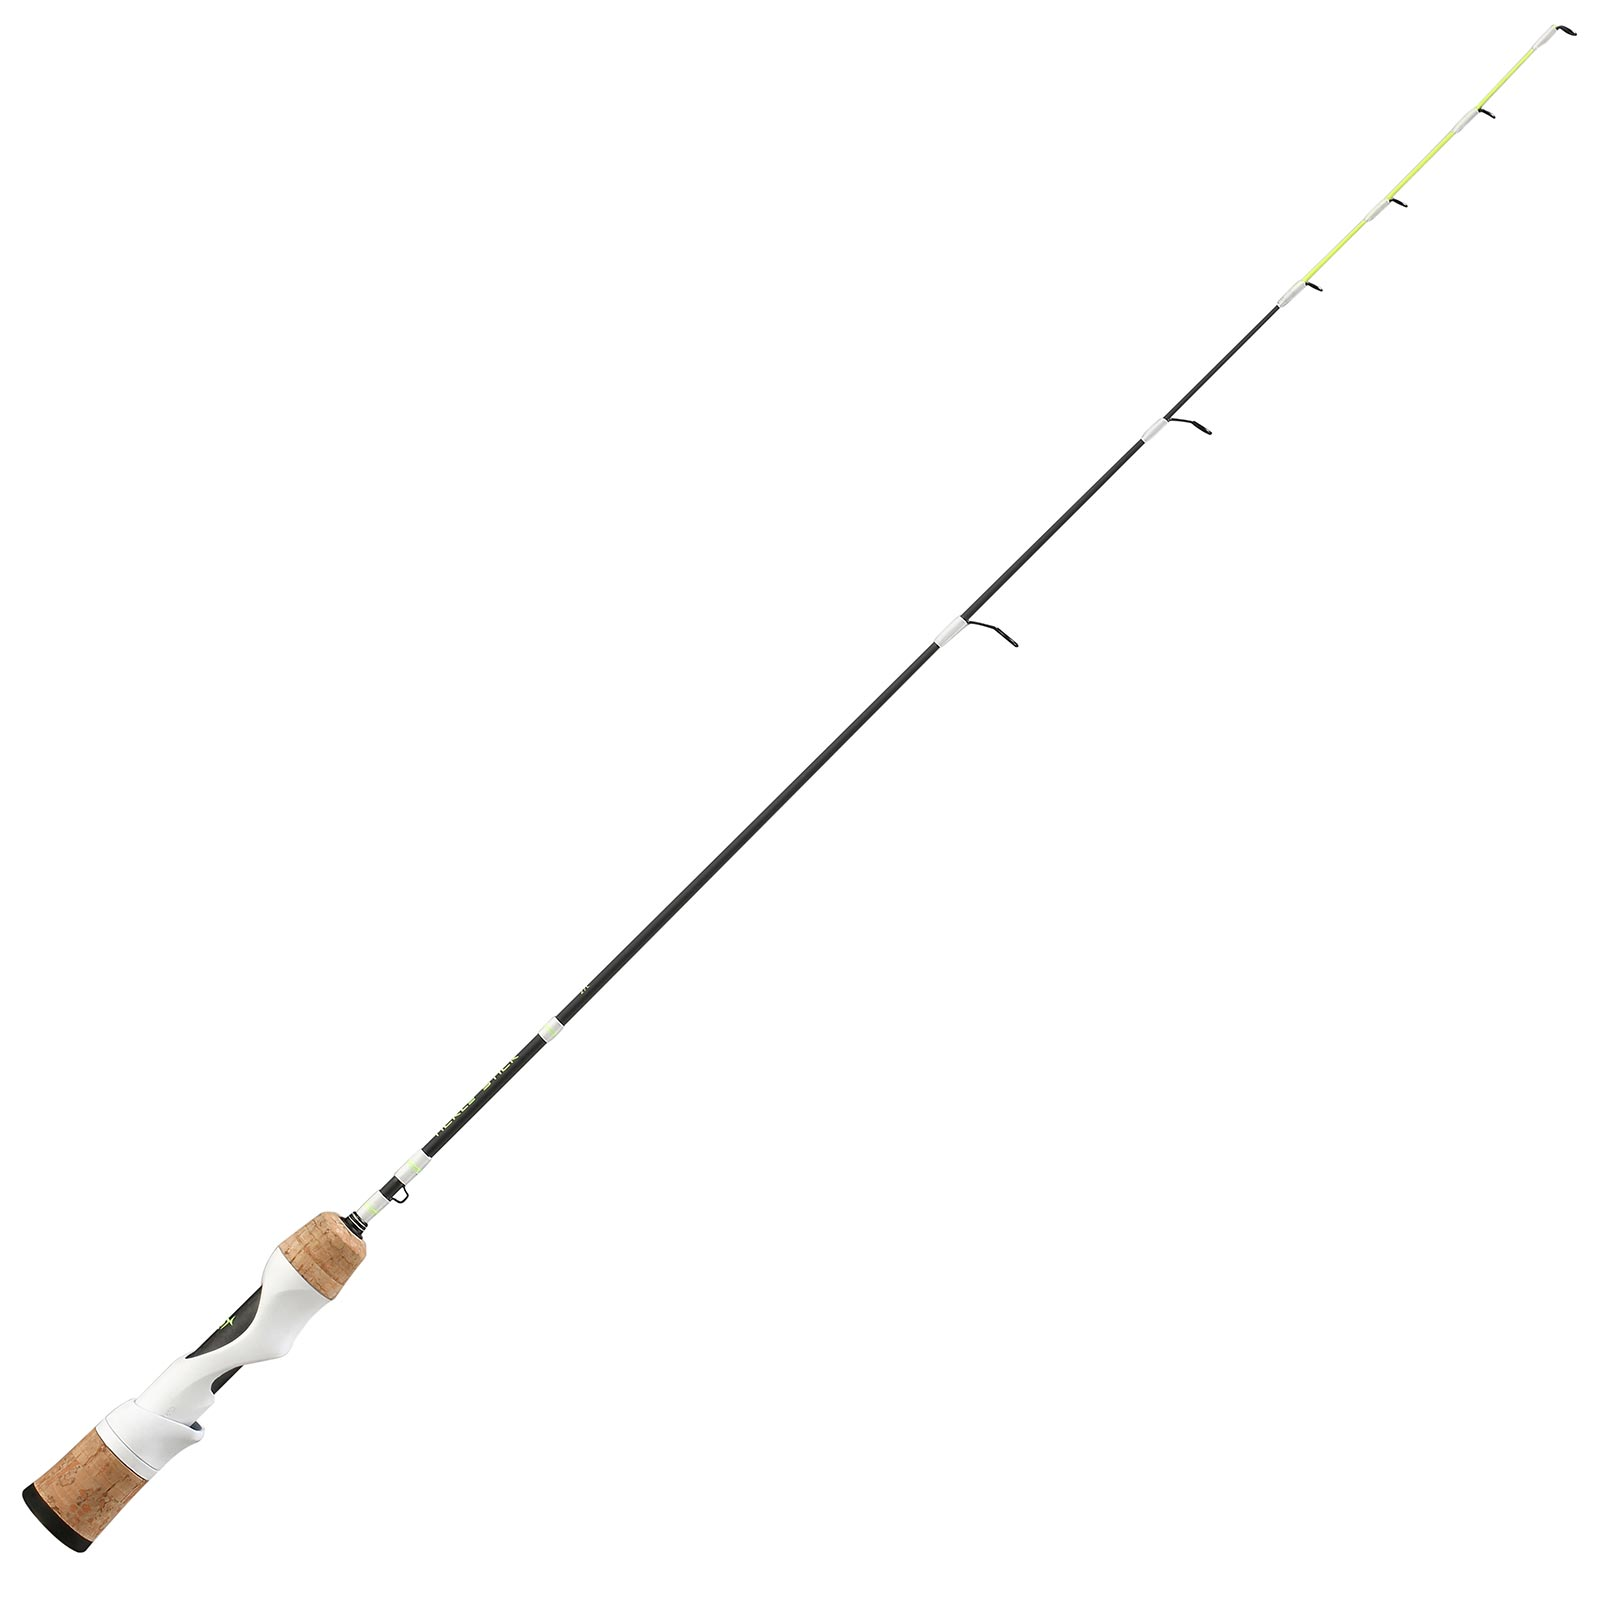 13 Fishing Tickle Stick Ice Rod